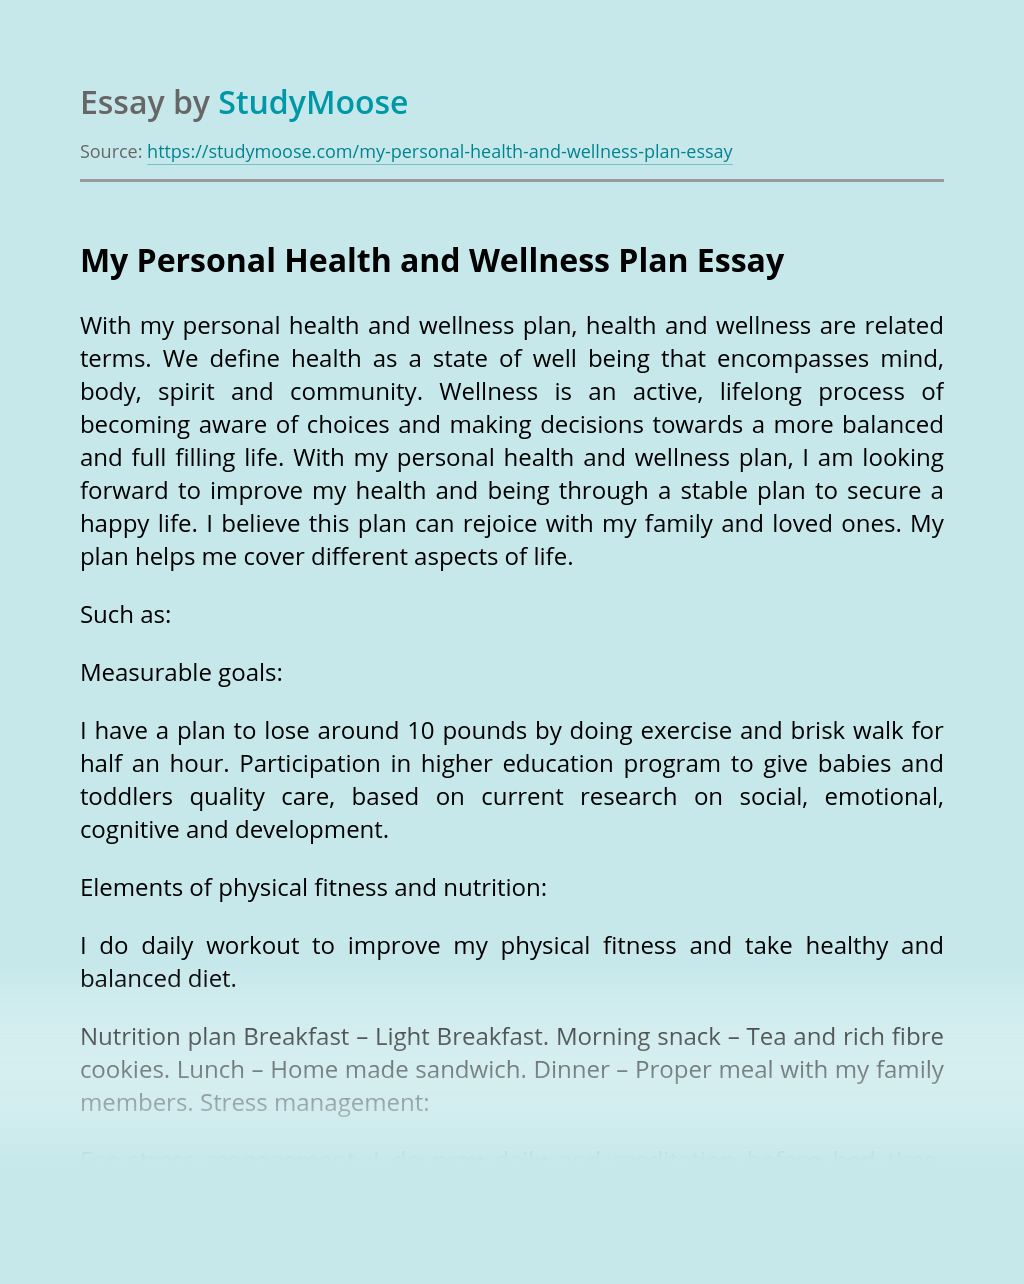 My Personal Health and Wellness Plan